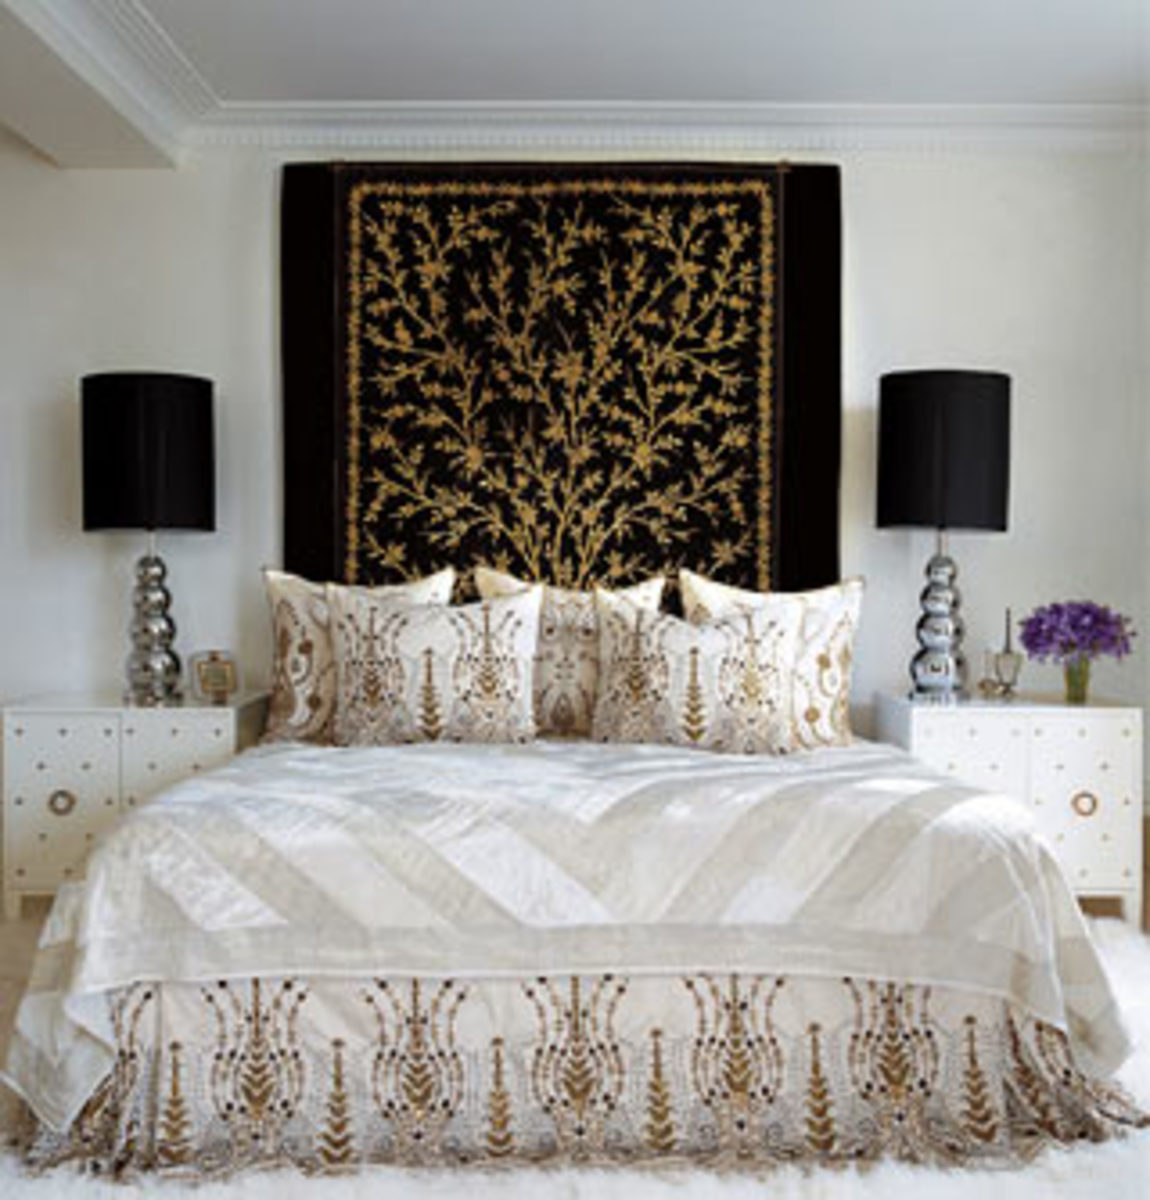 """White bedroom"" of Tamara Mellon."